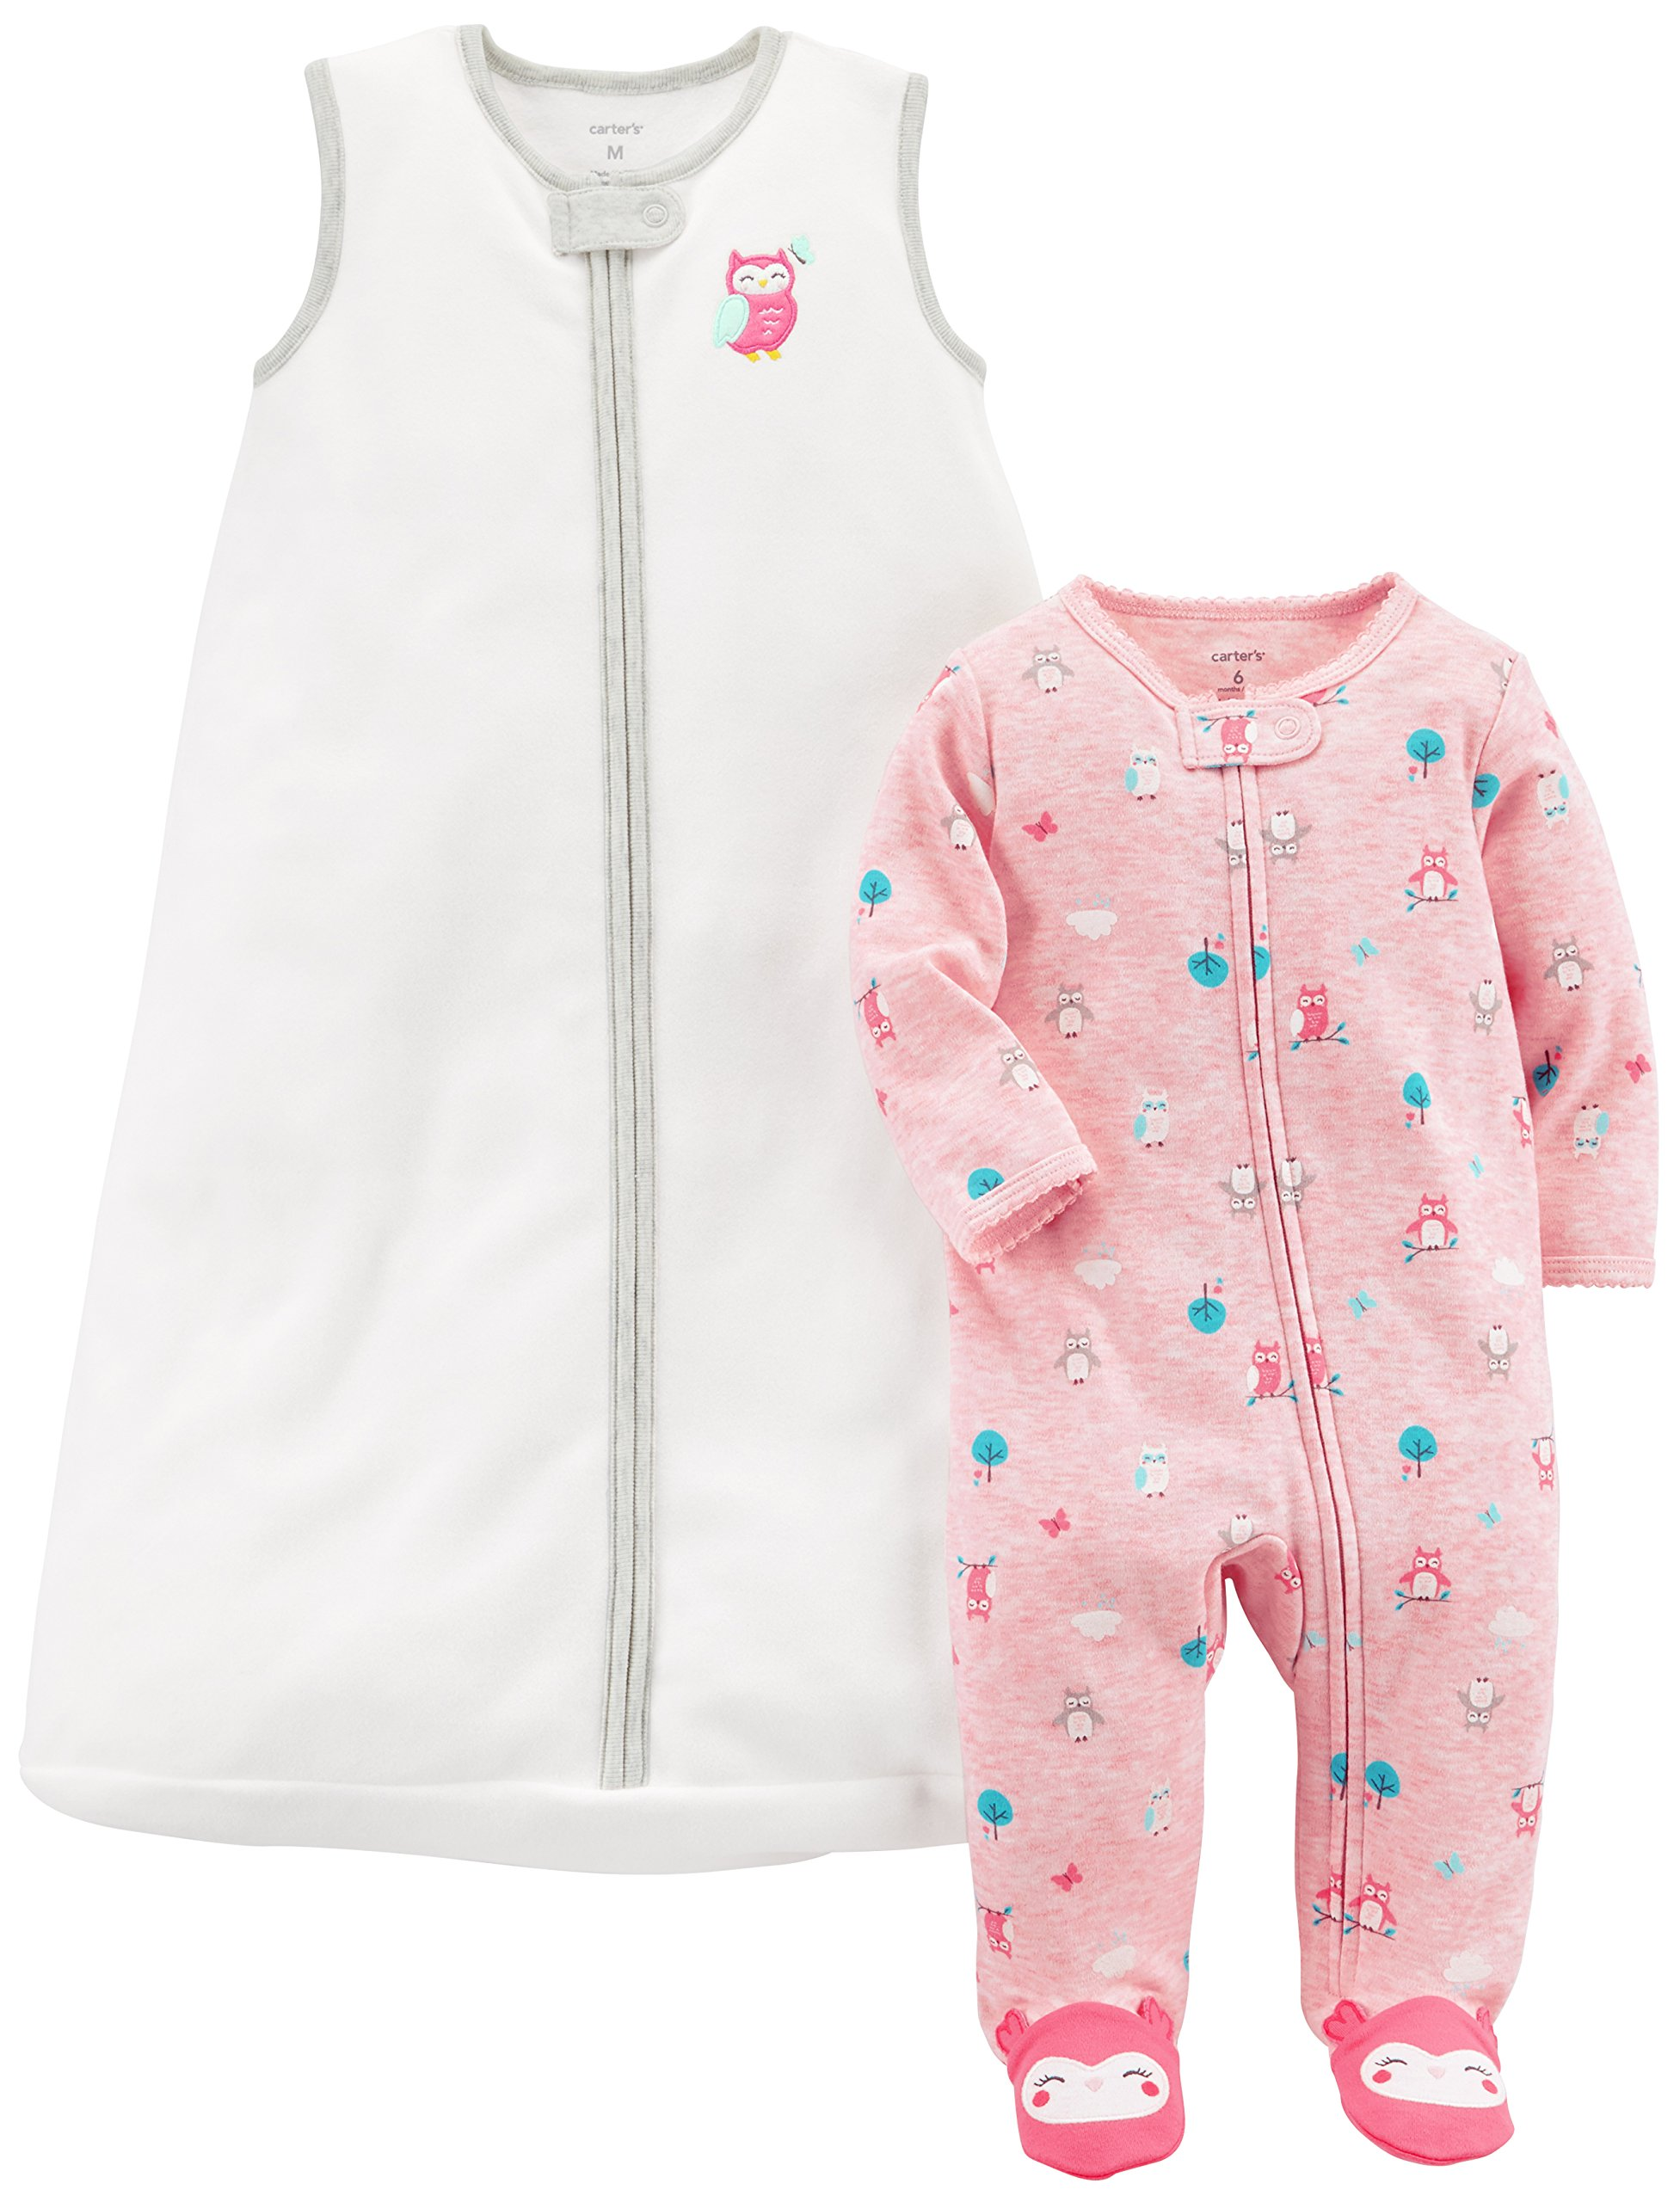 Carter's Baby Girls' 2-Pack Fleece Sleep and Play with Sleepbag, Pink Owl/White, 3 Months